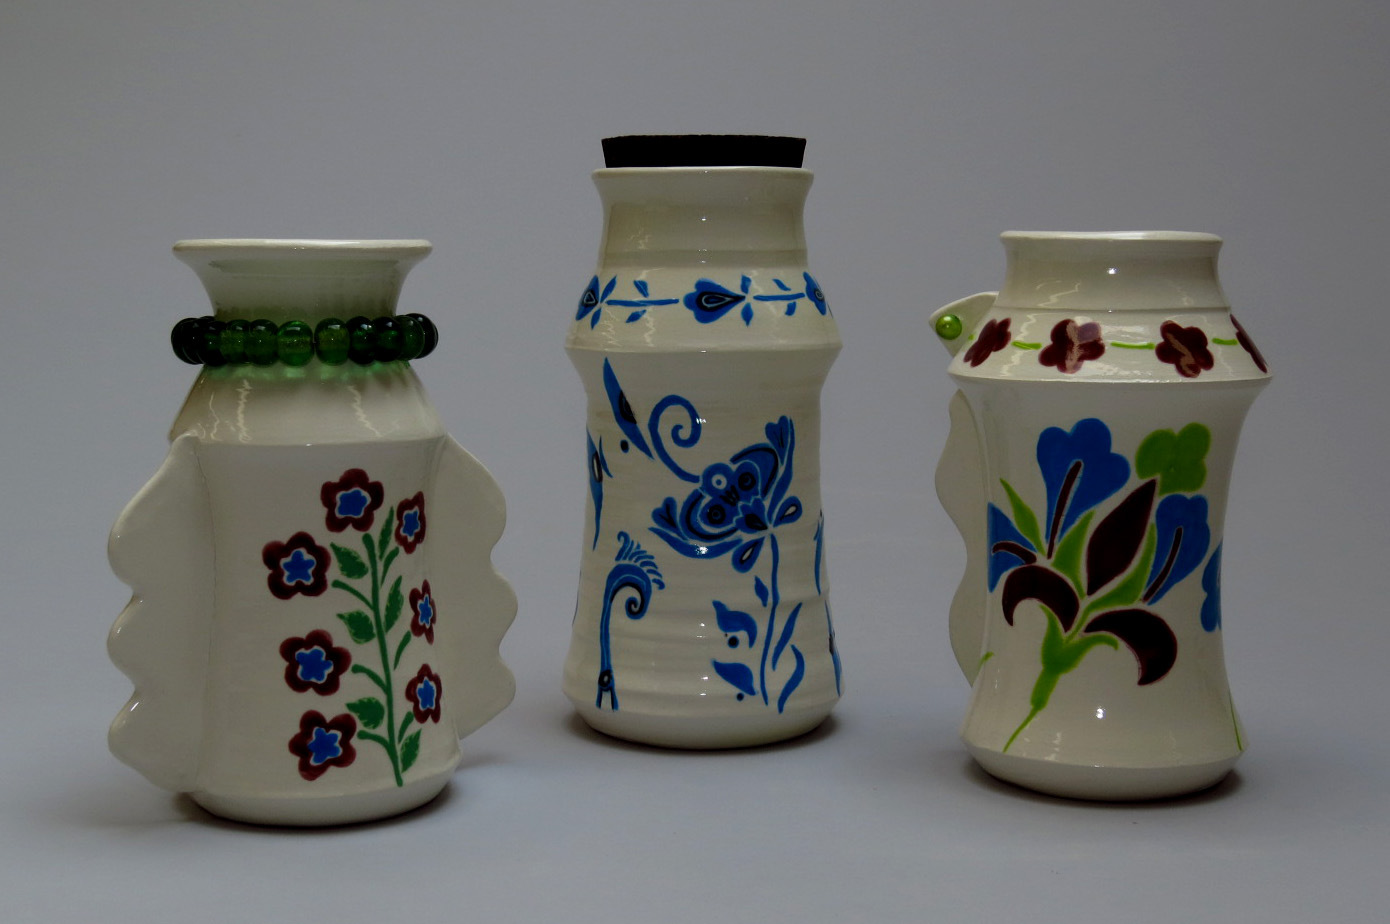 """Small Vessels:  6"""" – 8""""h"""